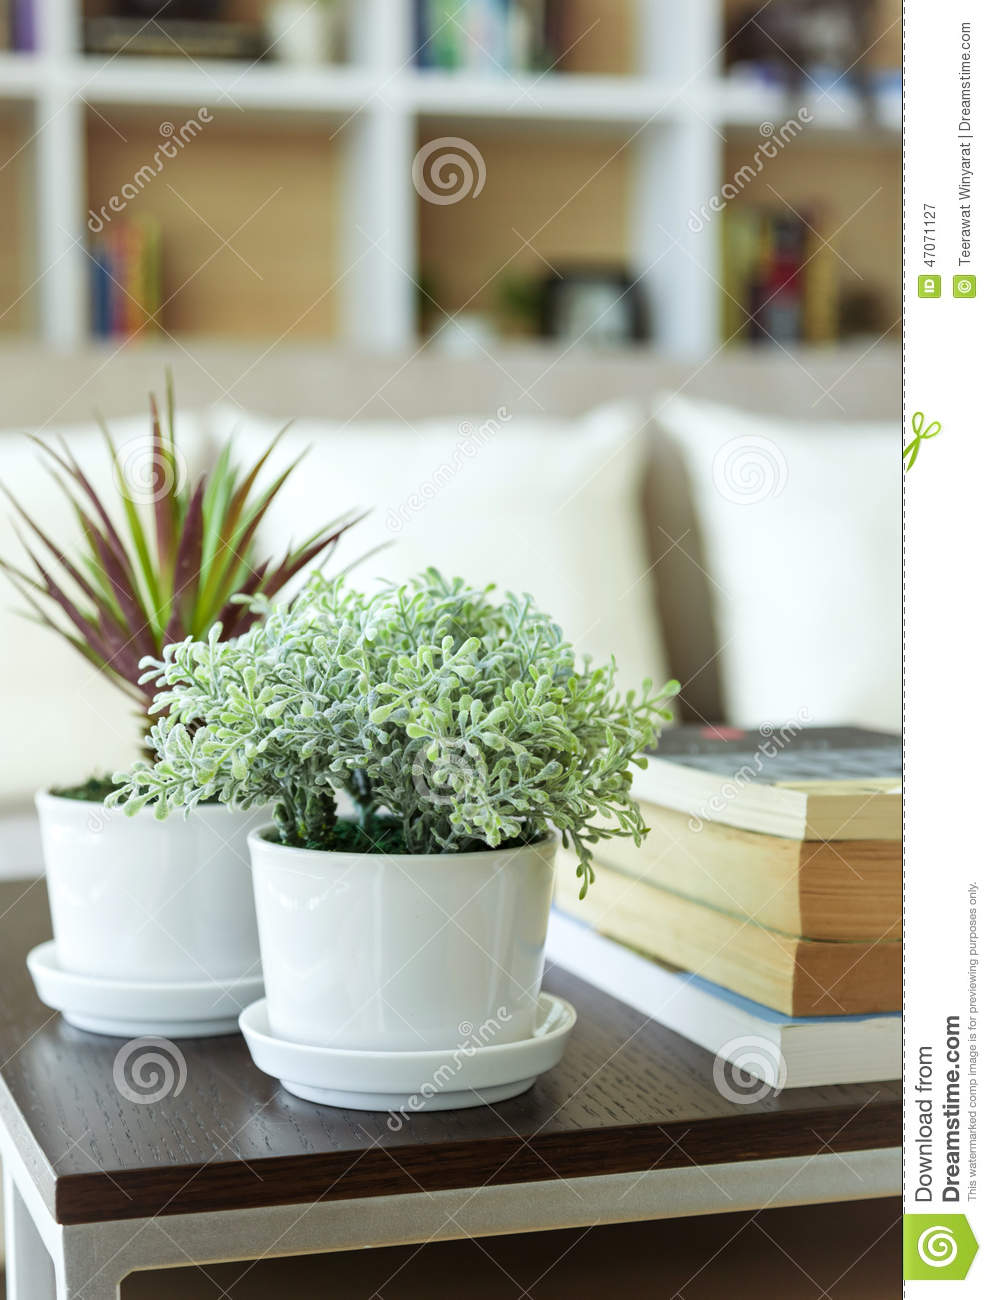 Green plant on table home decoration stock photo image for Sofa table for plants